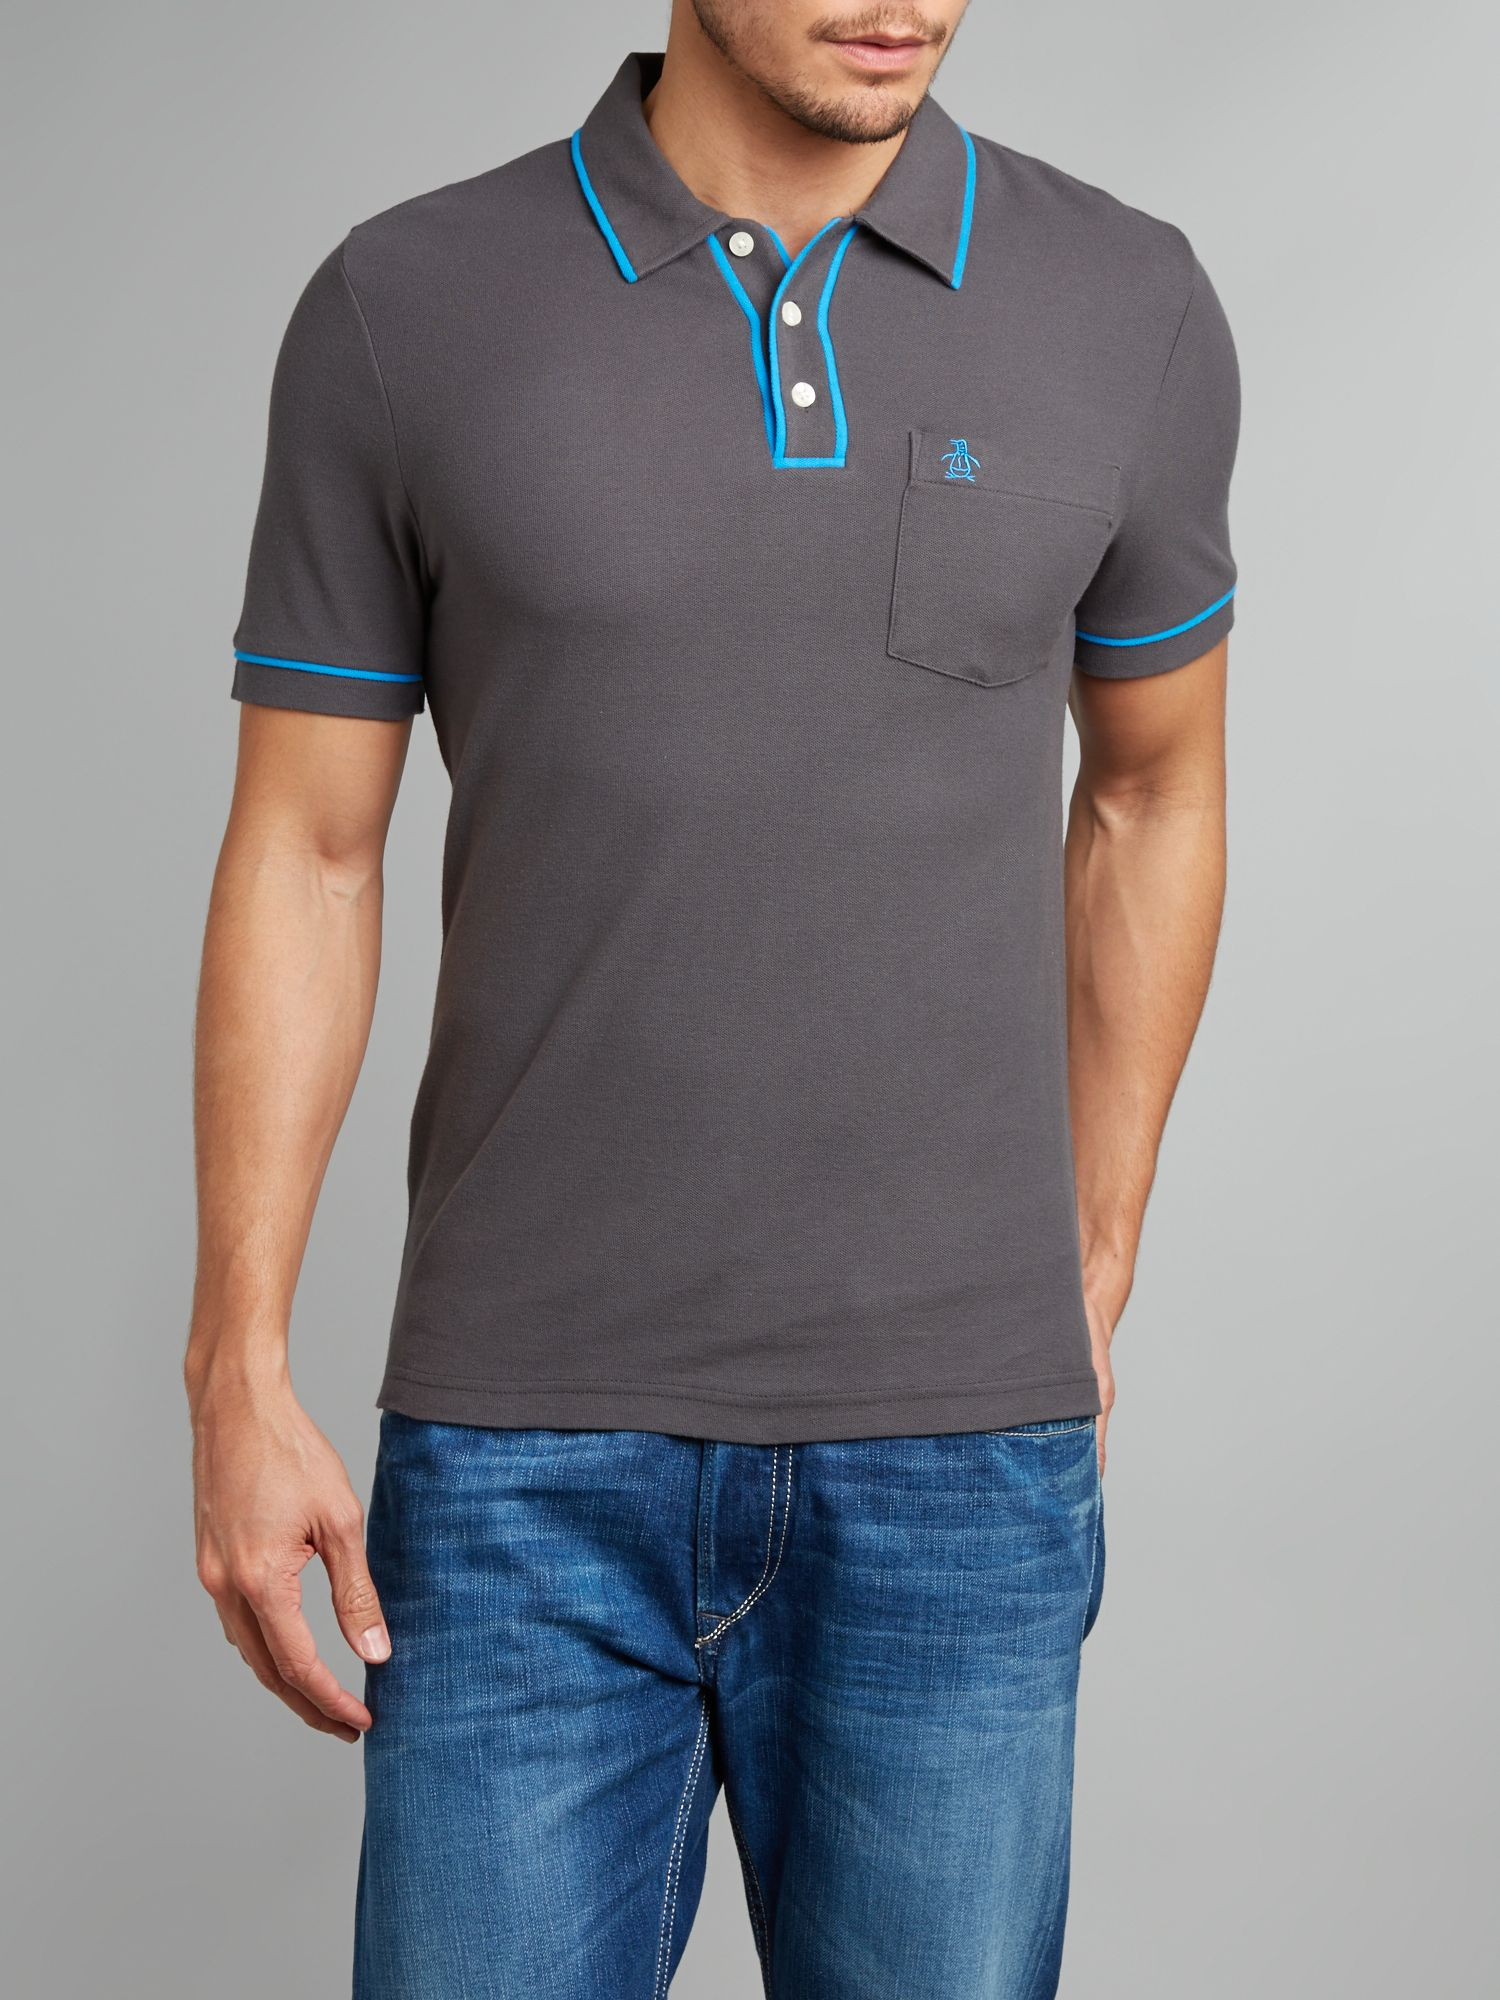 Original Penguin Earl Polo Shirt In Gray For Men Lyst